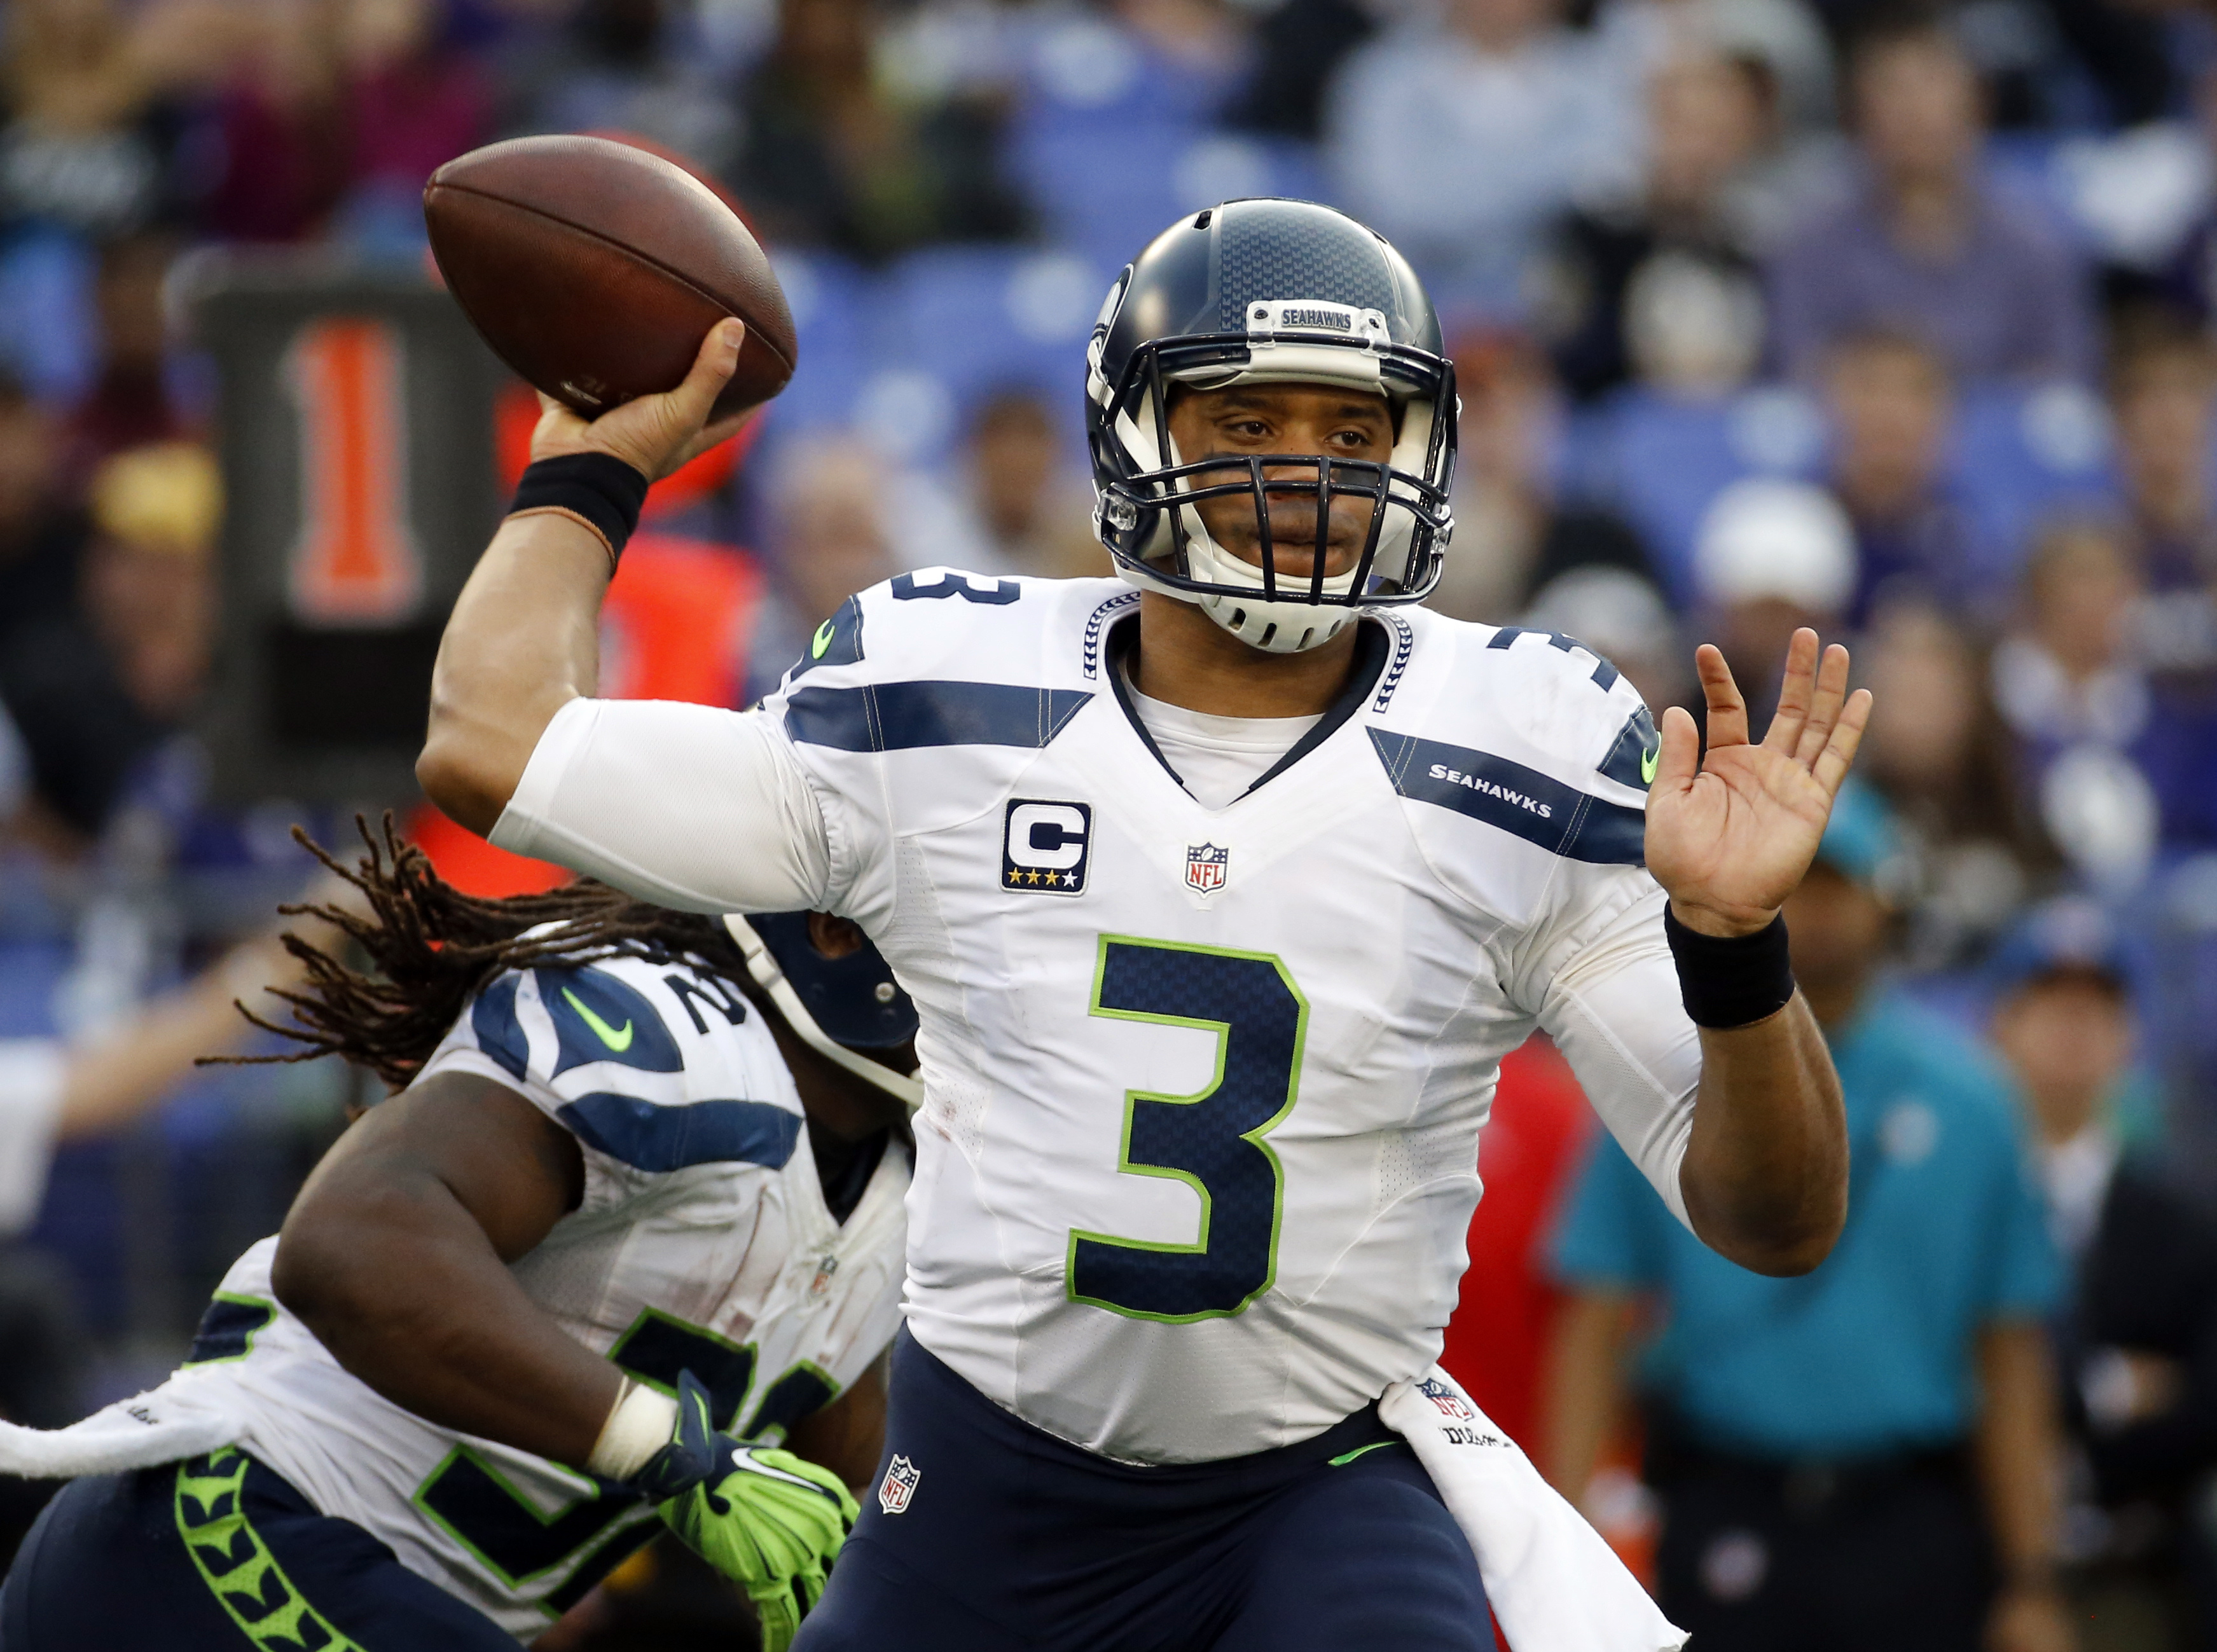 FILE - In this Dec. 13, 2015, file photo, Seattle Seahawks quarterback Russell Wilson looks to pass during an NFL football game against the Baltimore Ravens in Baltimore. The Seahawks begin training camp on July 30, 2016 with relatively few questions. The